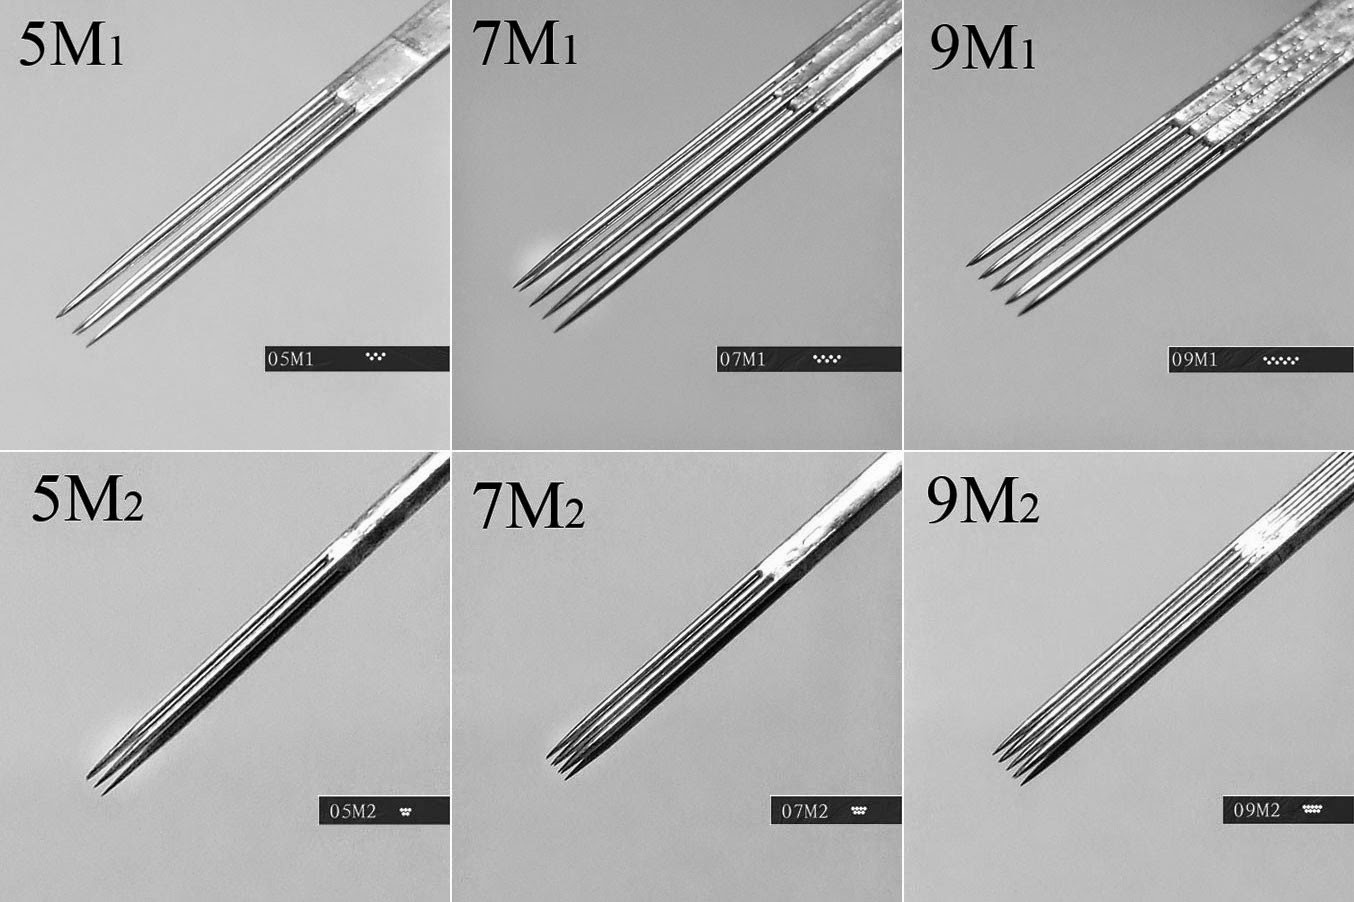 Tattoo Needles Sizes And Purposes